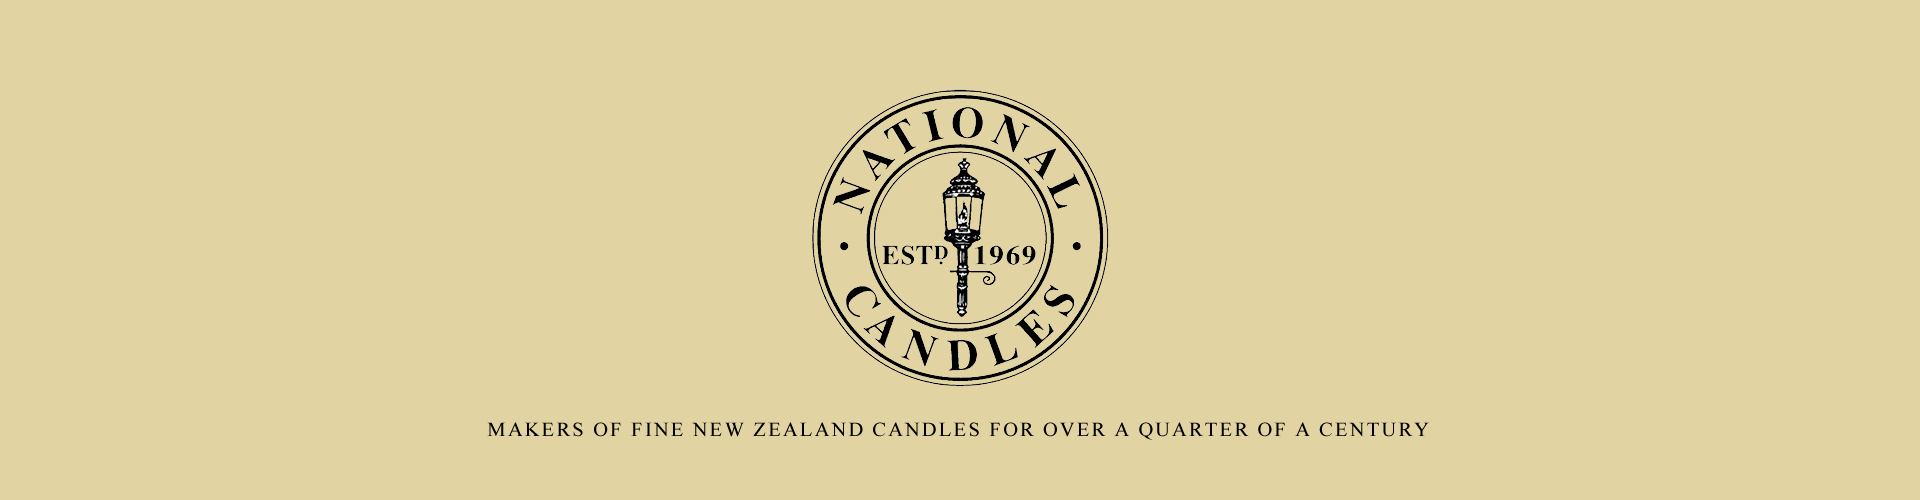 National Candles Wellington